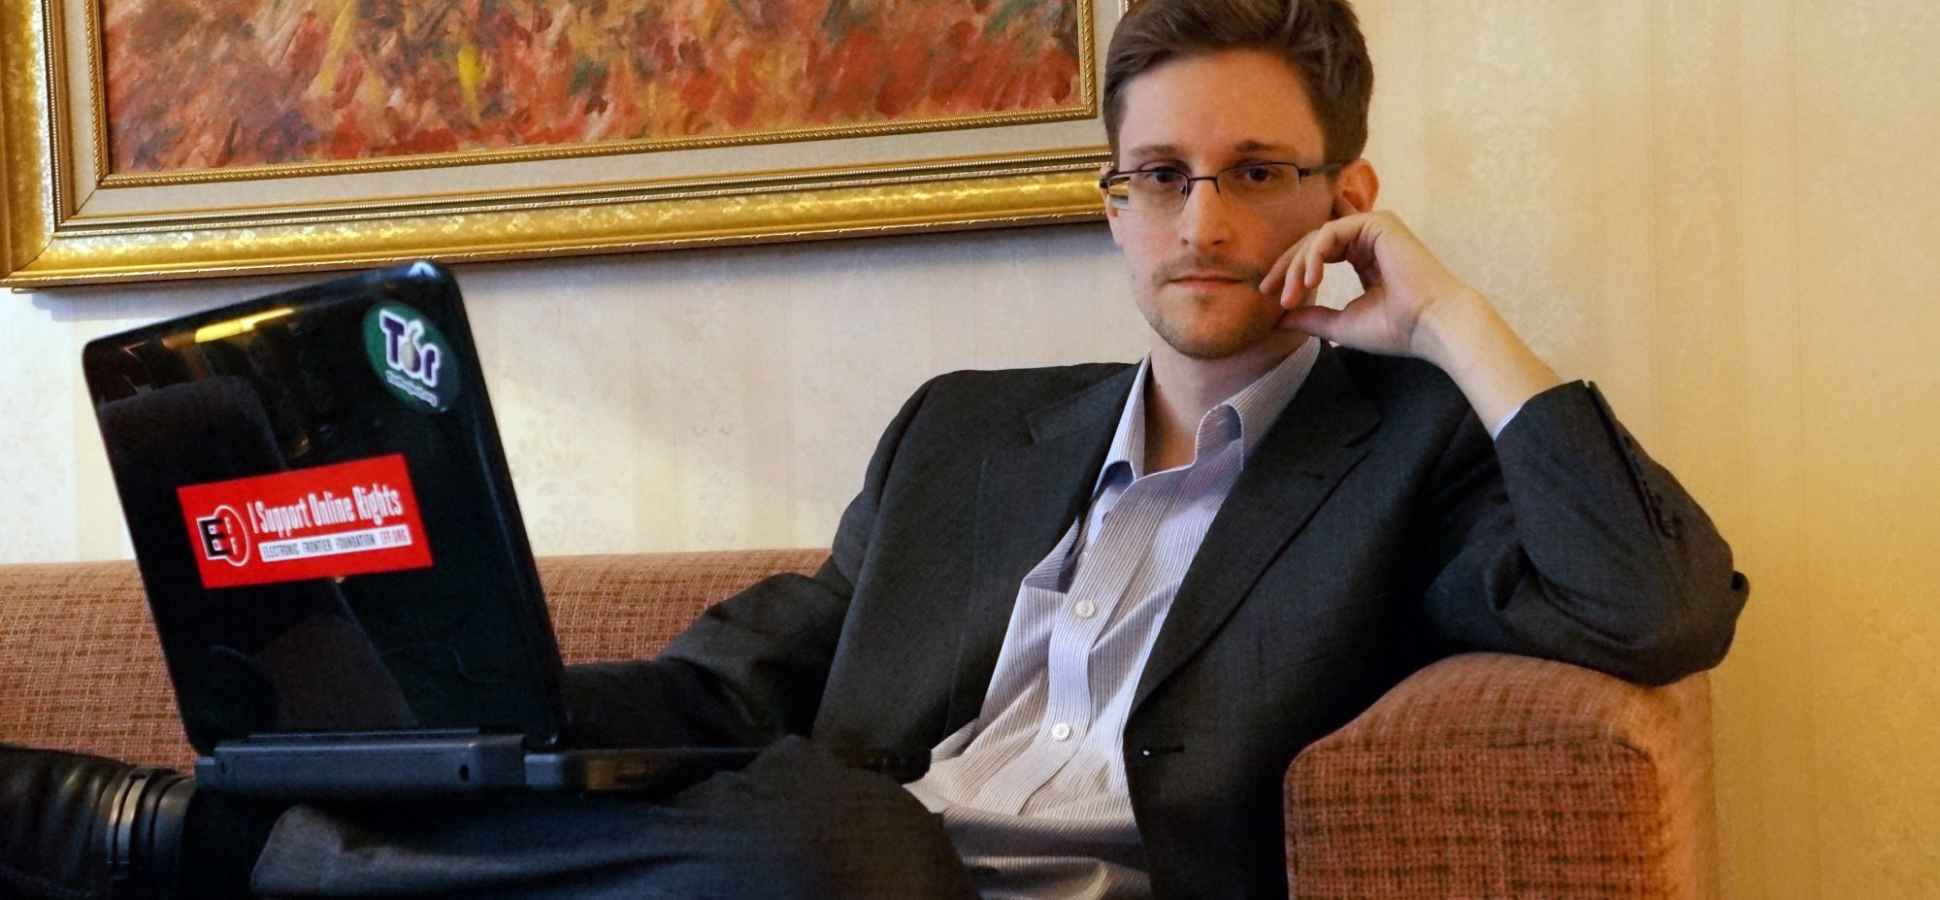 Edward Snowden Designs Anti-Spying iPhone Case